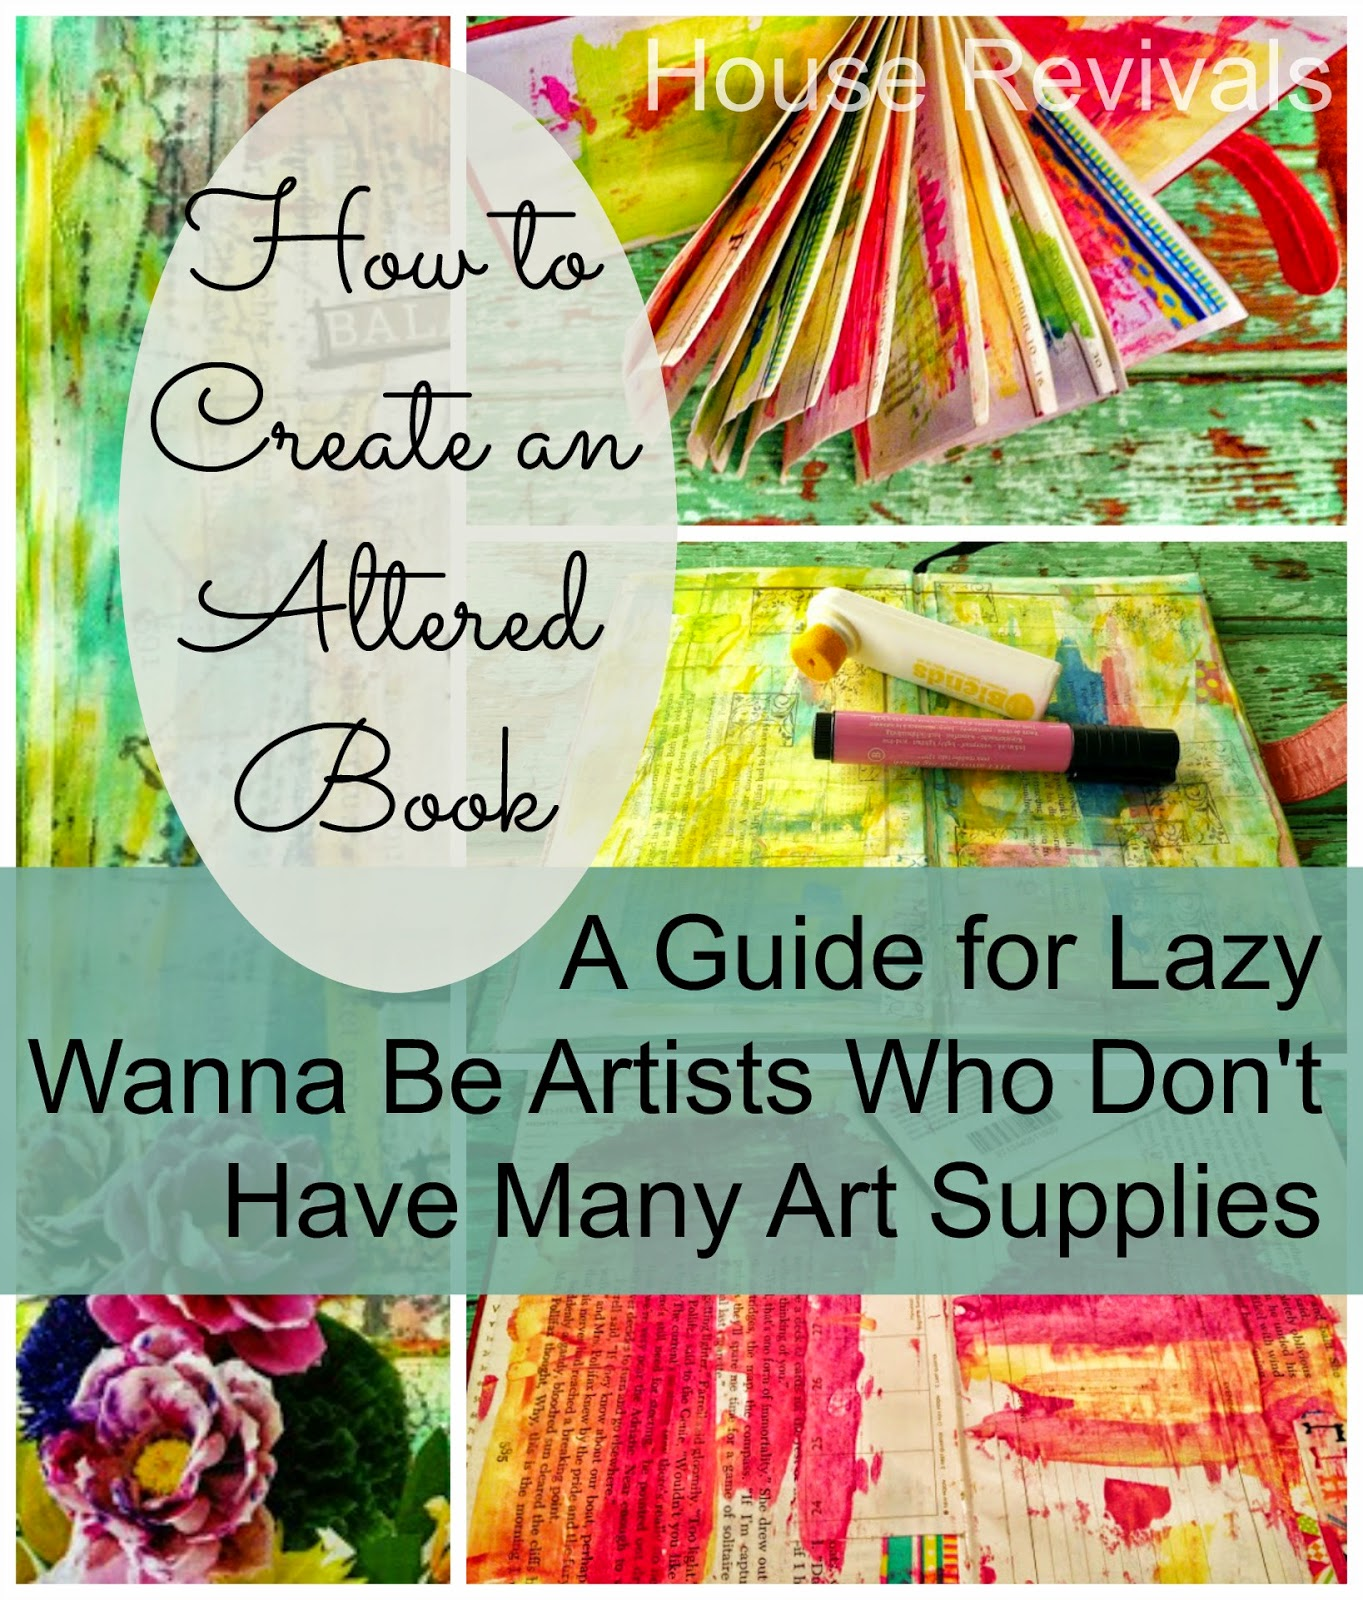 House Revivals How To Create An Altered Book The Lazy Way